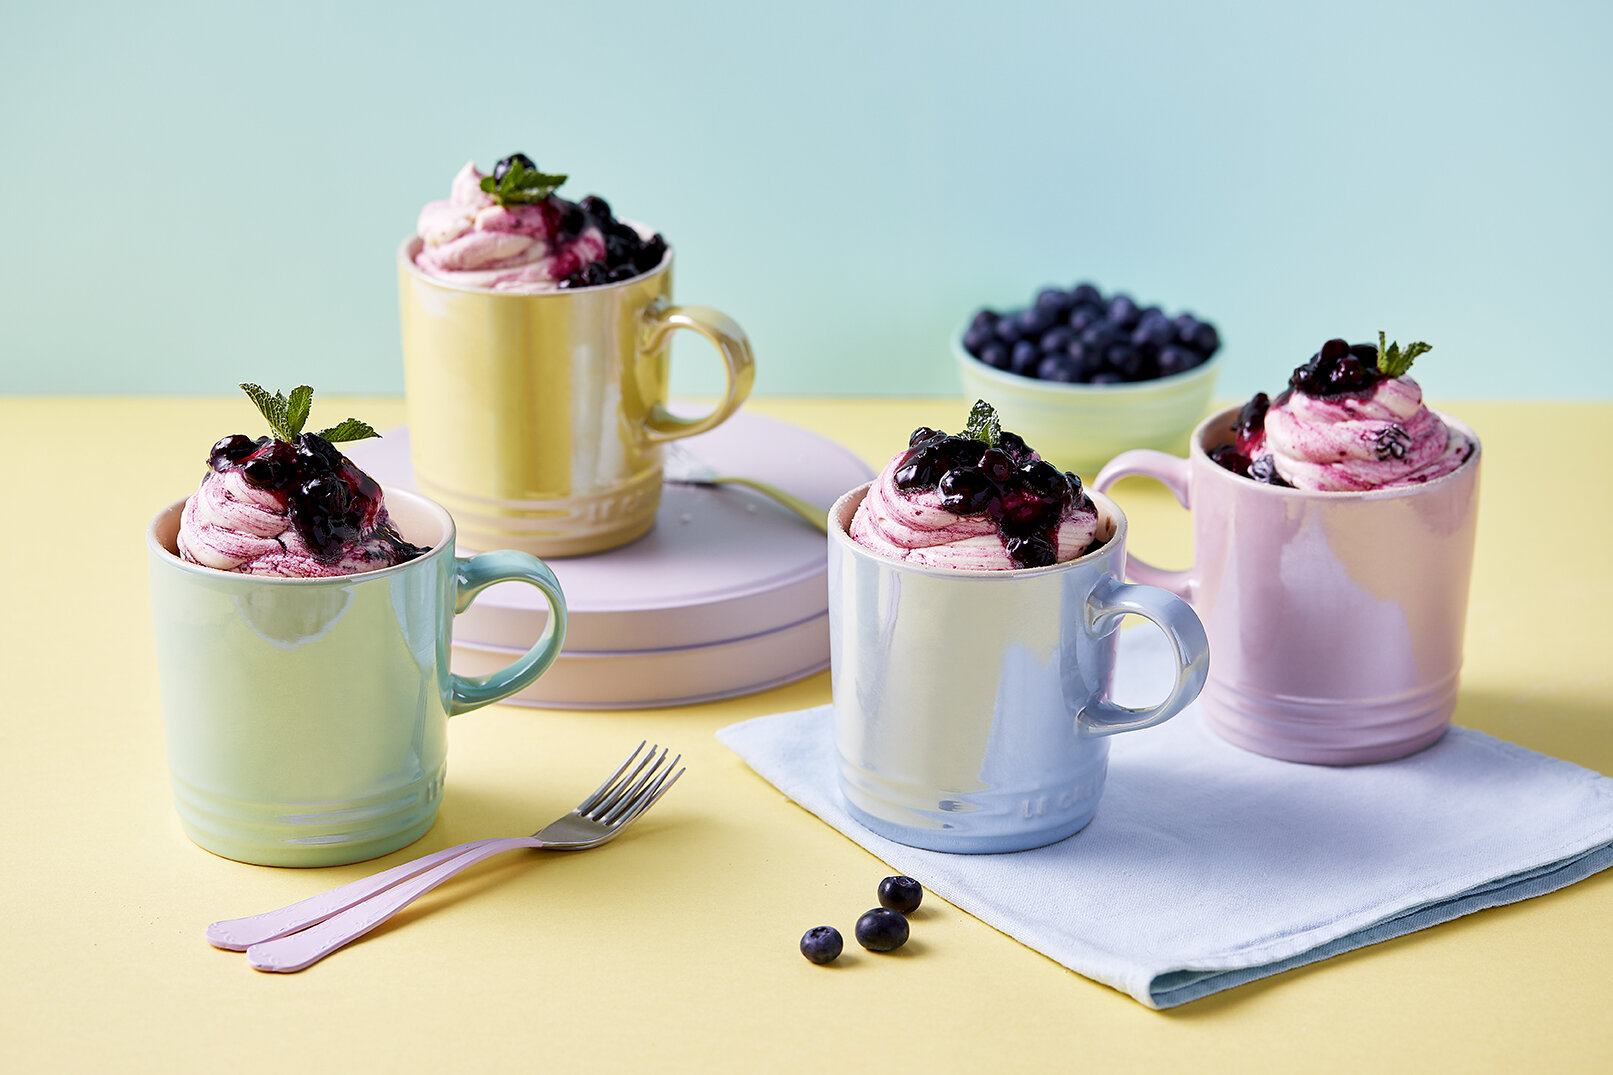 Blueberry and white chocolate mug cake Landscape f5.6.jpg